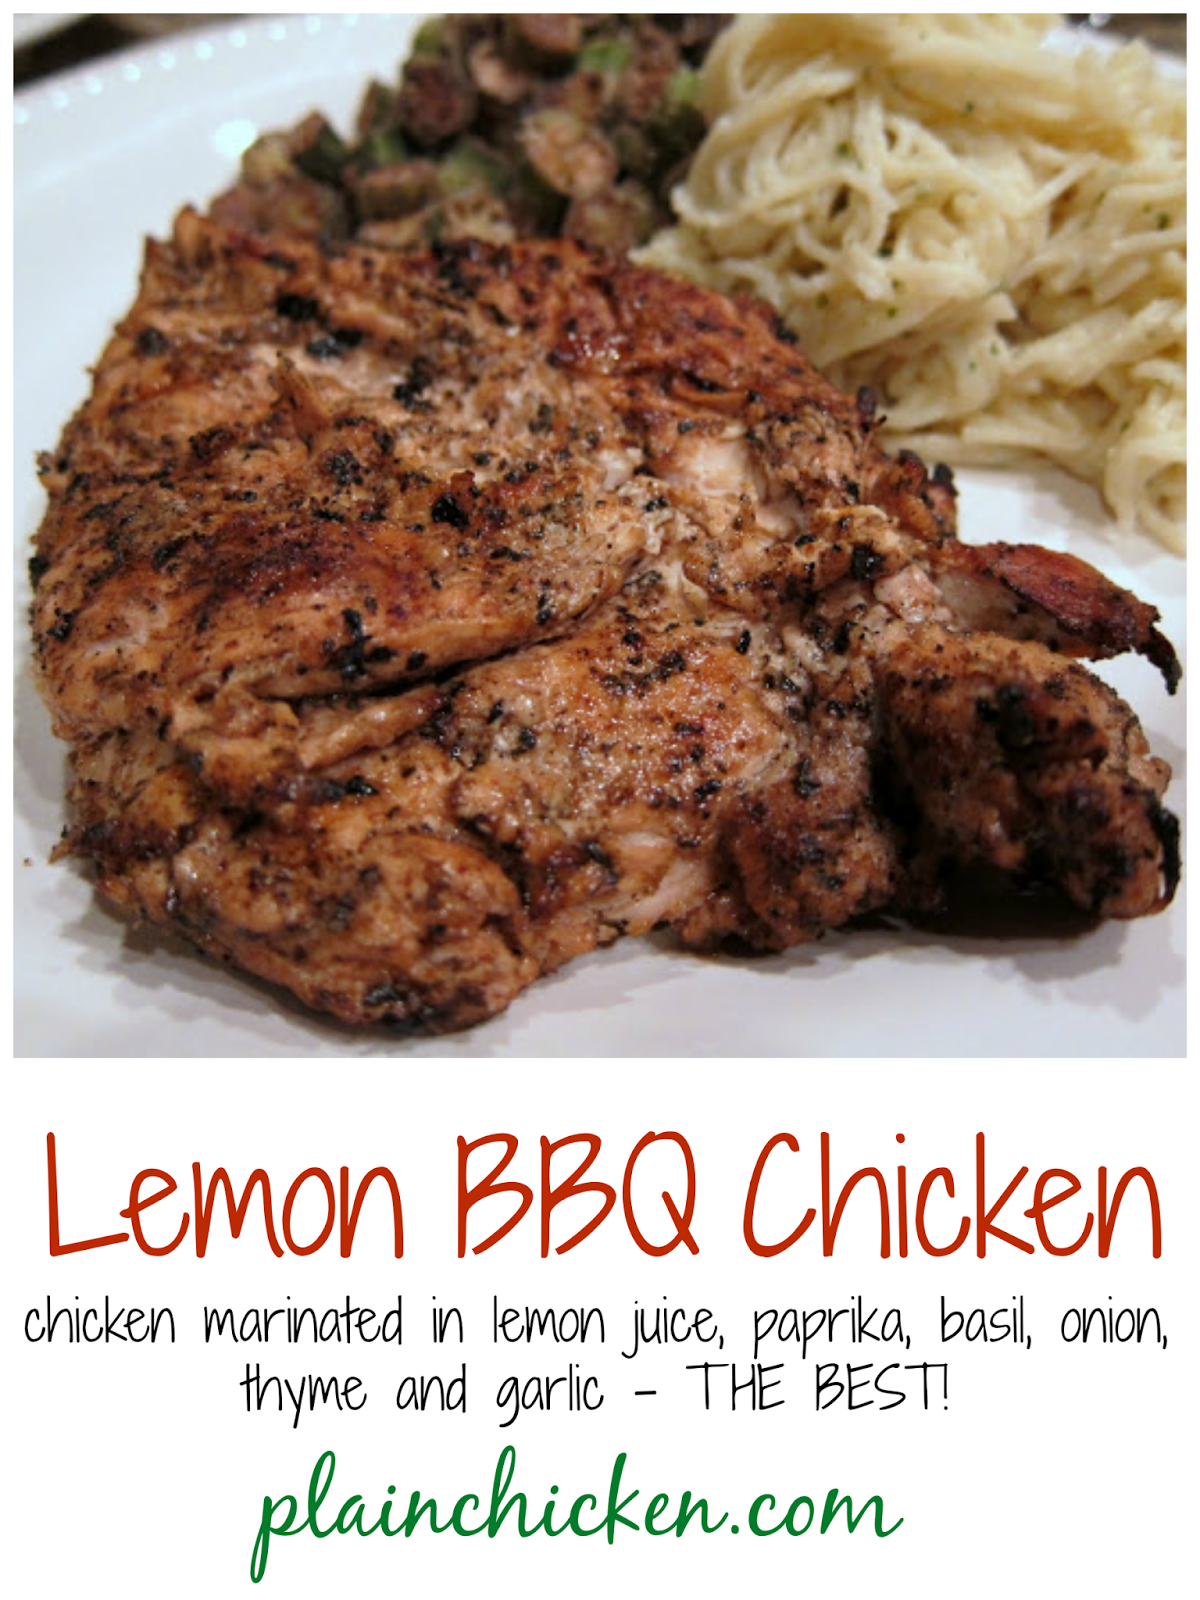 Lemon BBQ Chicken - chicken marinated in oil, lemon juice and spices. Fantastic flavor and never dry! We always double the recipe for leftover chicken. THE BEST grilled chicken recipe!